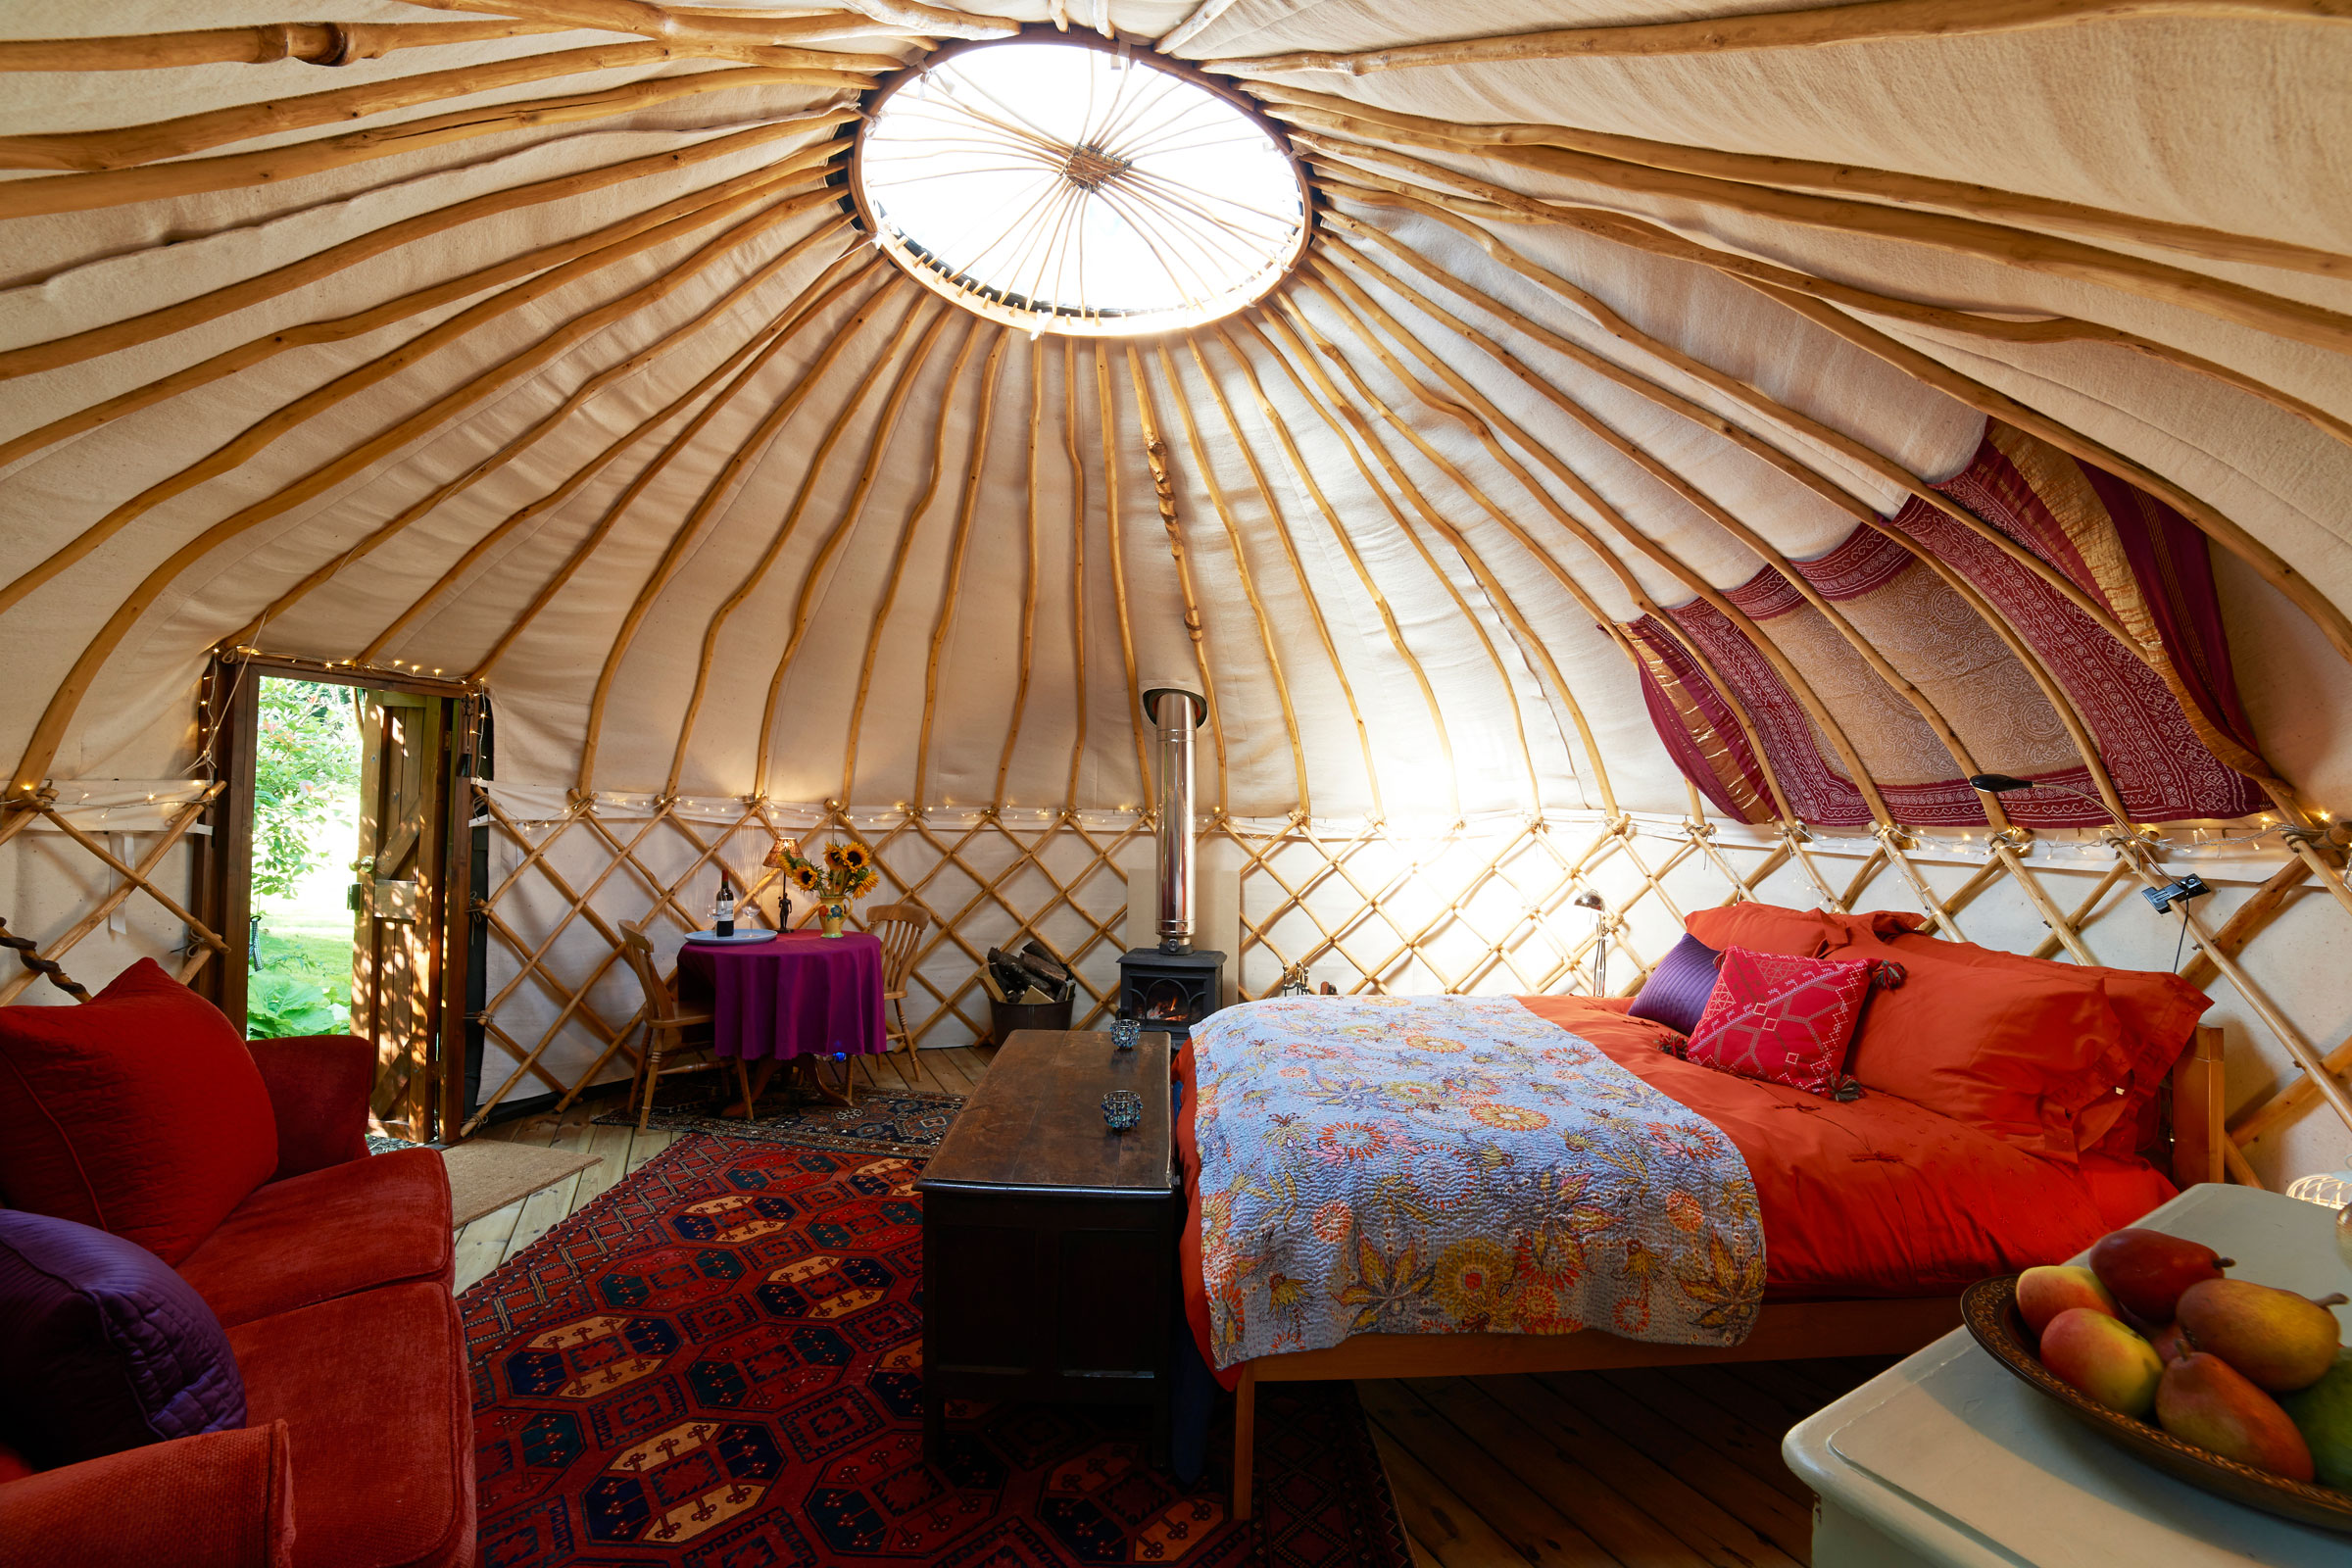 Ooh la la—glamping lets you camp in comfort and wake up with the birds. istock